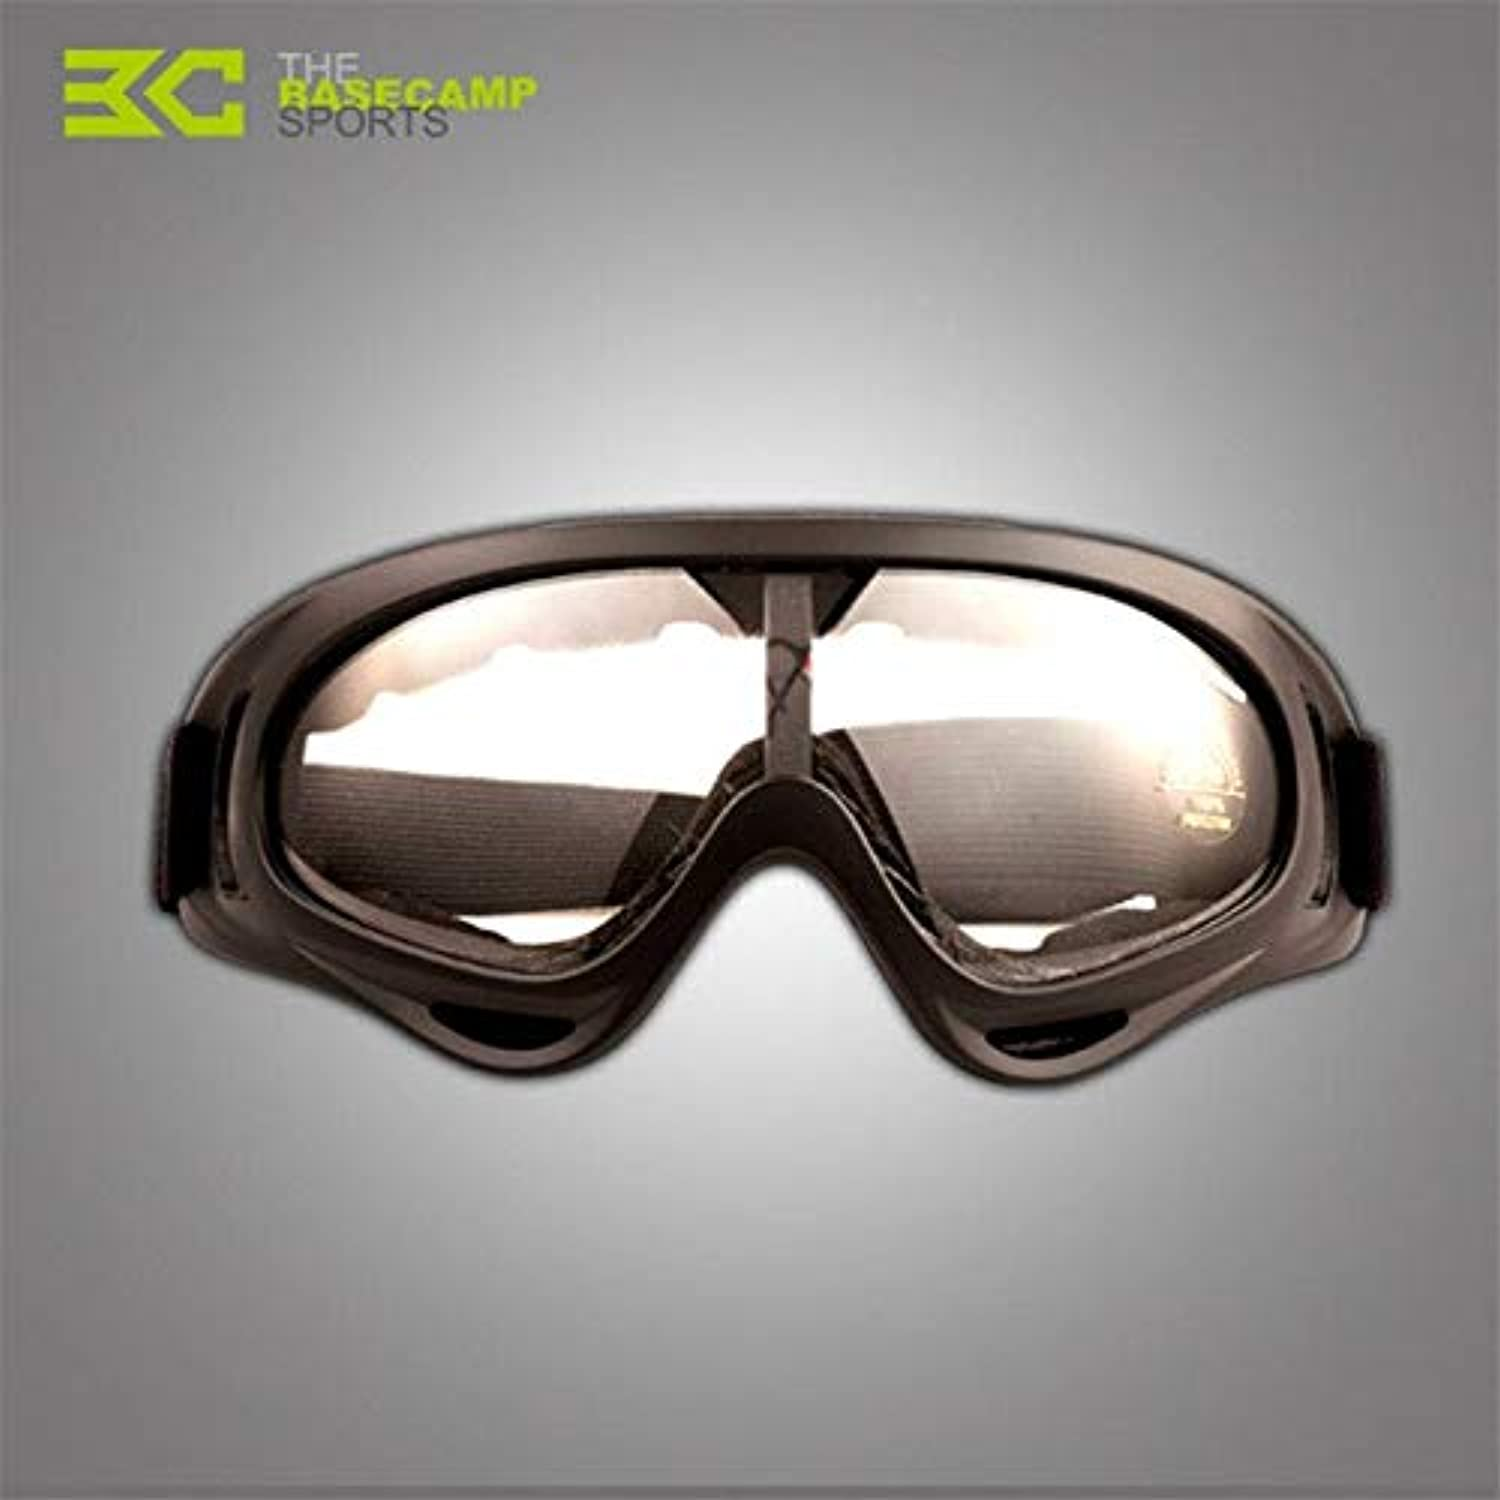 Clear   Basecamp Men's Women's Cycling Glasses UV400 Outdoor Sports Windproof Eyewear Mountain Bike Bicycle Motorcycle Goggle Sunglasses